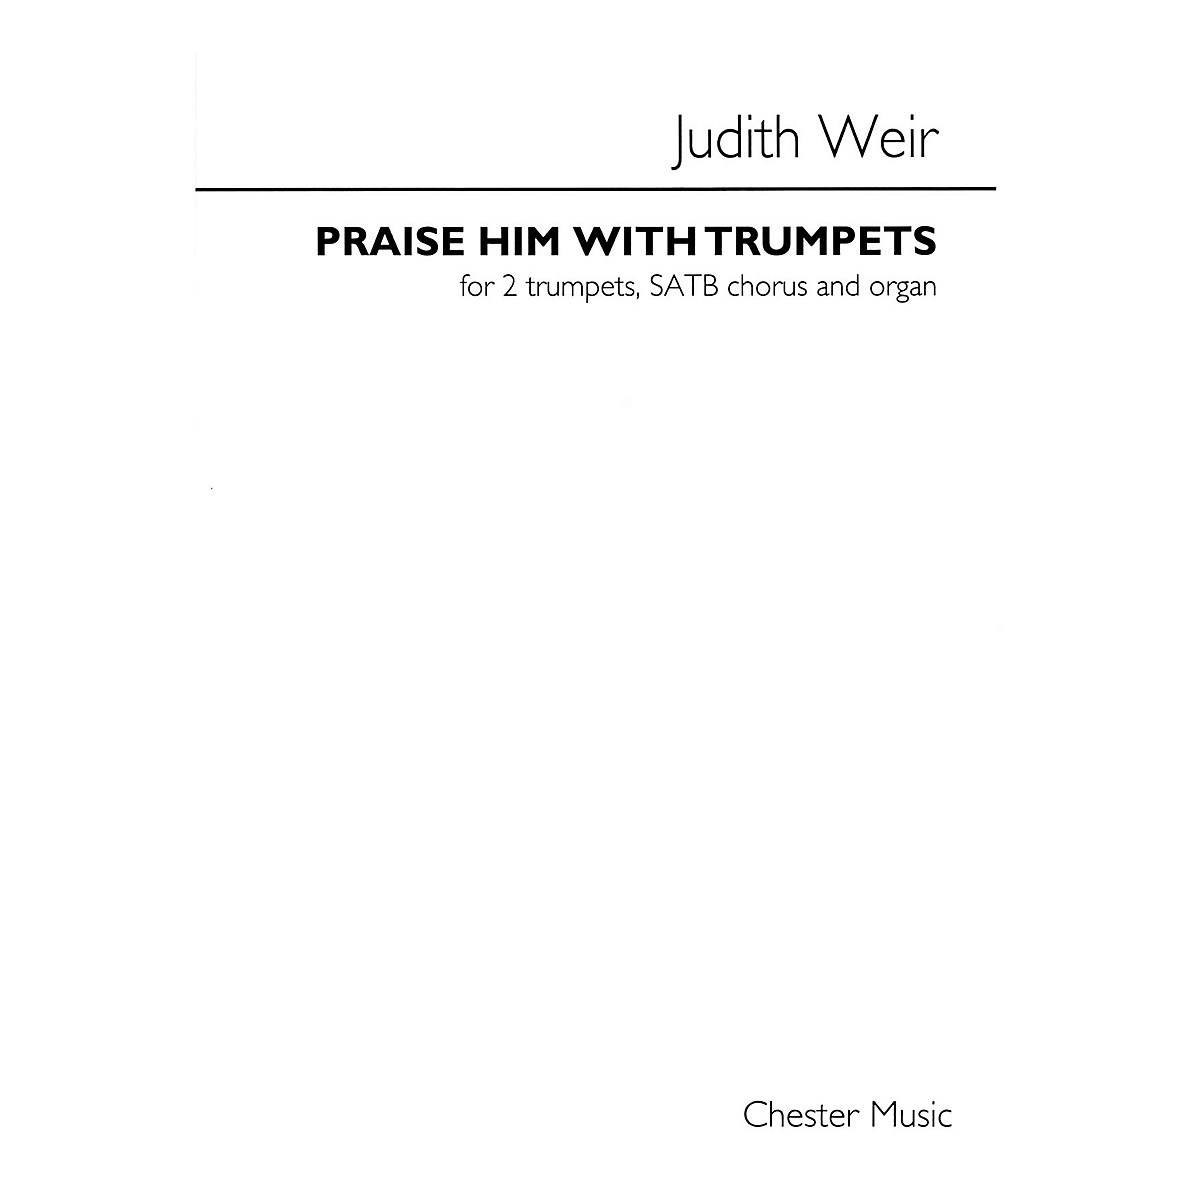 Chester Music Praise Him with Trumpets (For SATB, organ and 2 trumpets) SATB Composed by Judith Weir